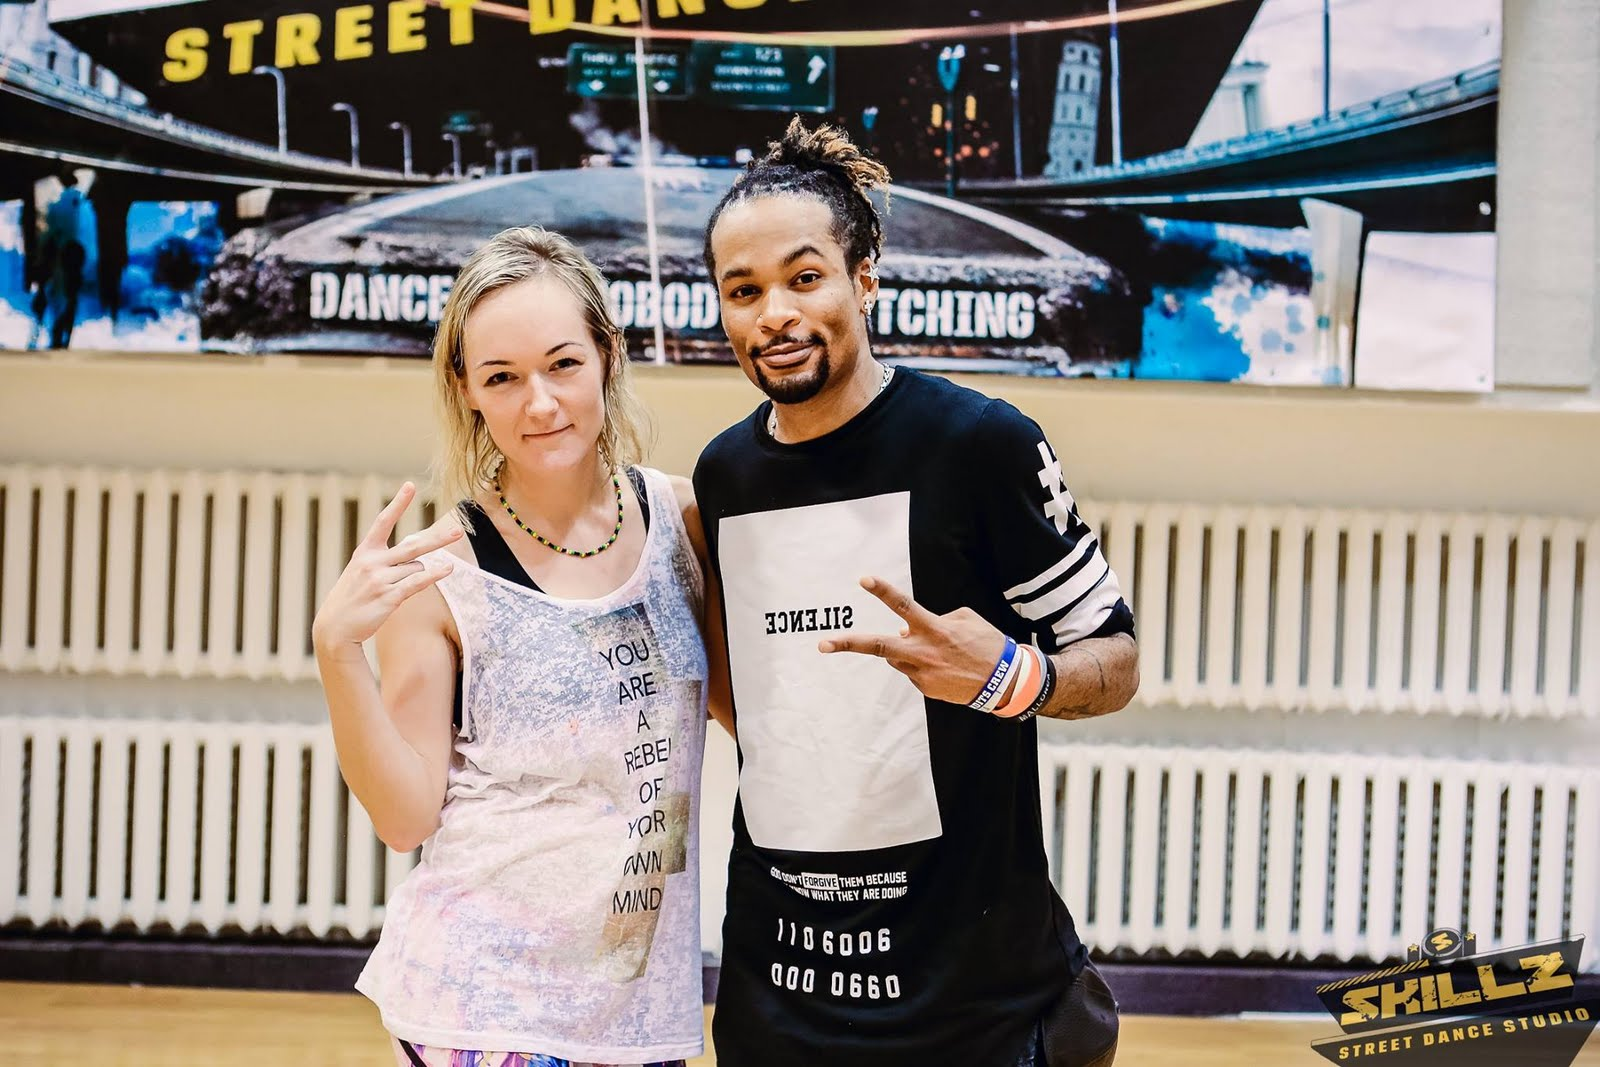 Dancehall workshop with Jiggy (France) - 71.jpg